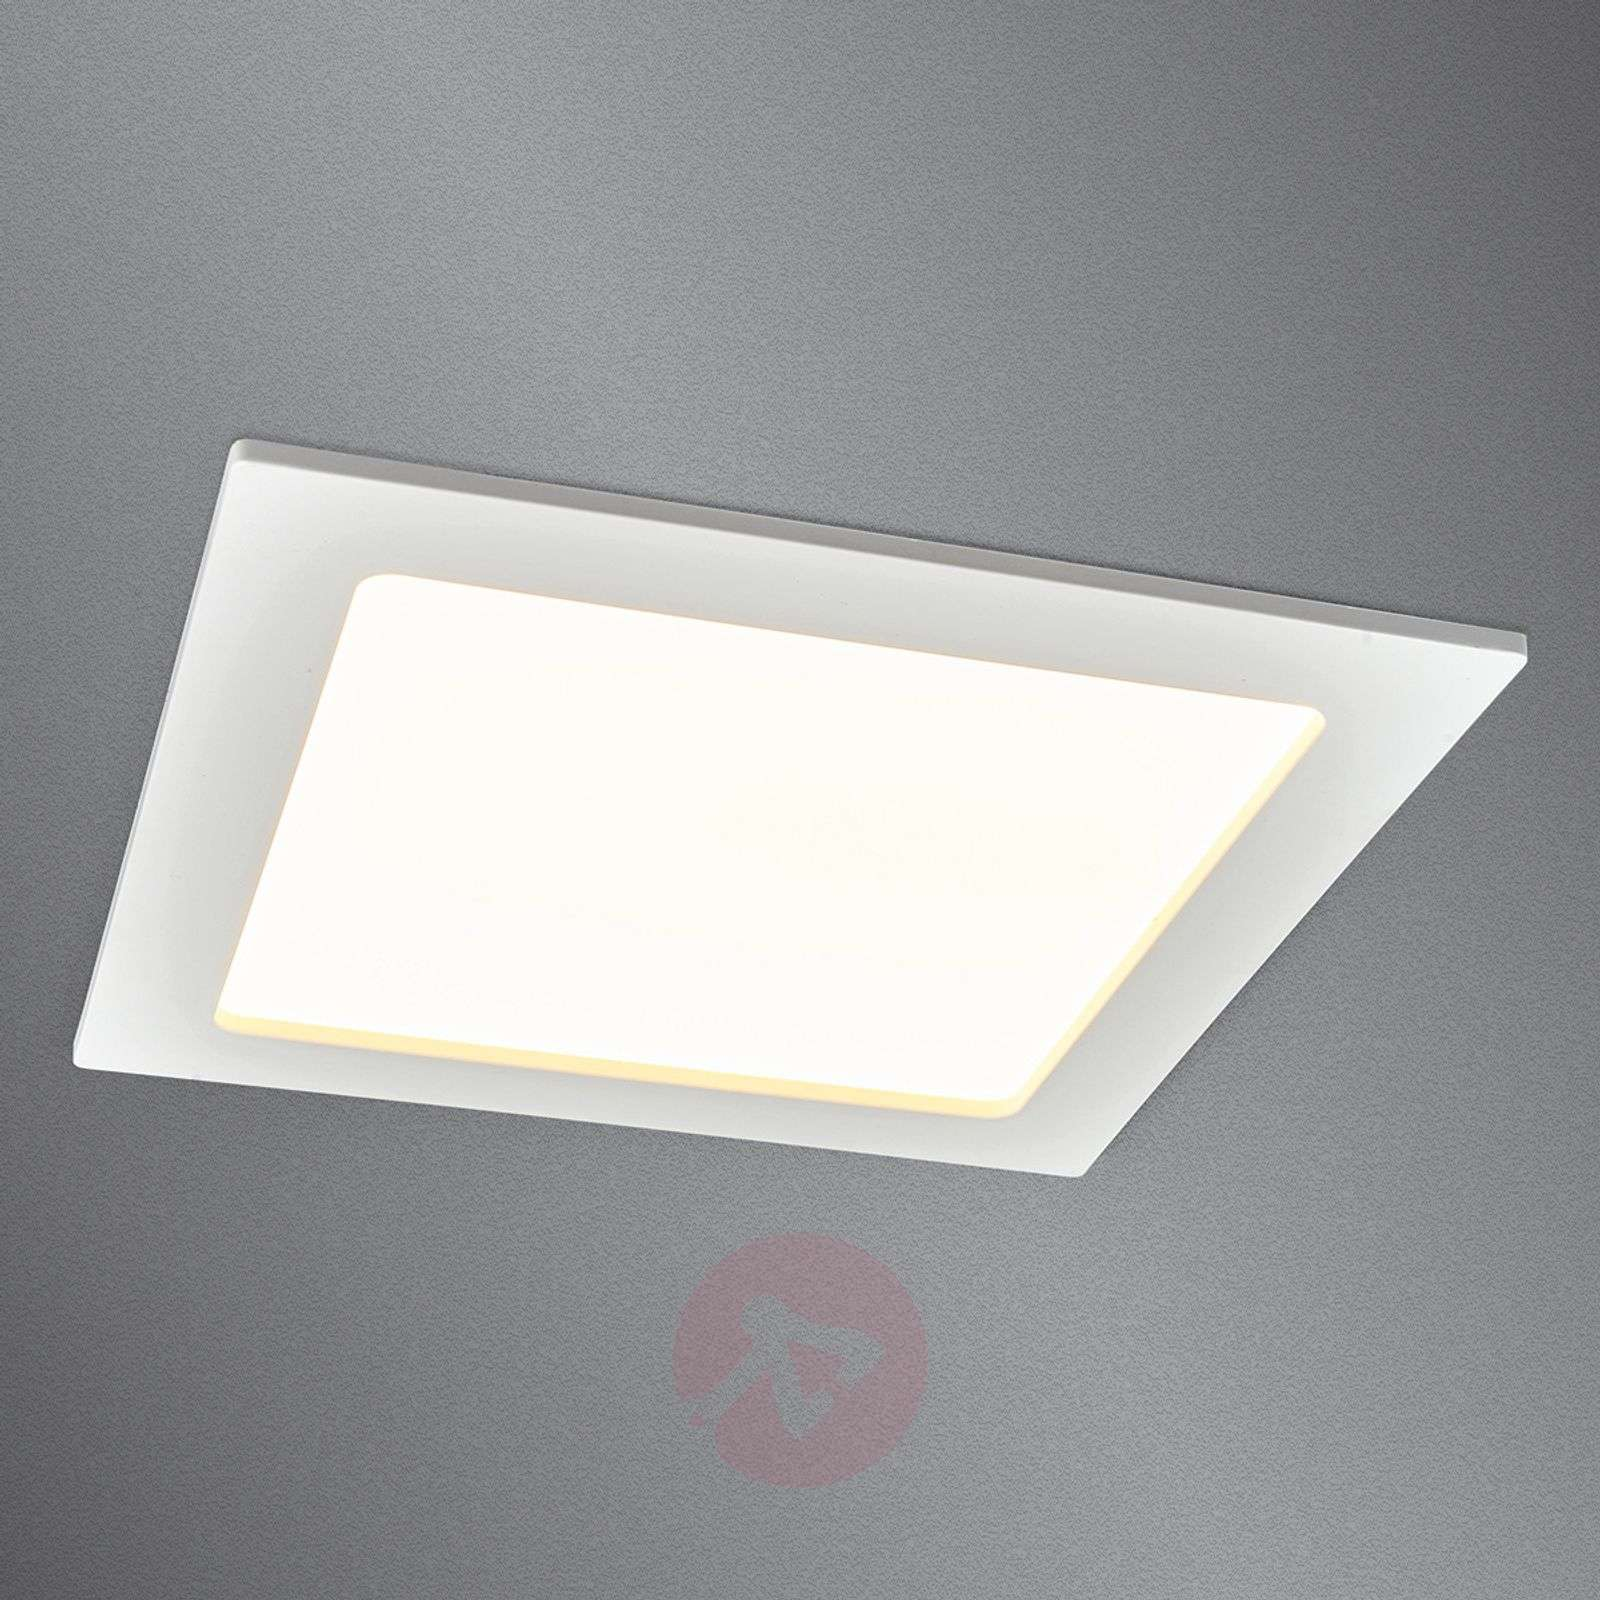 Led ceiling light feva for bathrooms ip44 16 w - Ip44 salle de bain ...